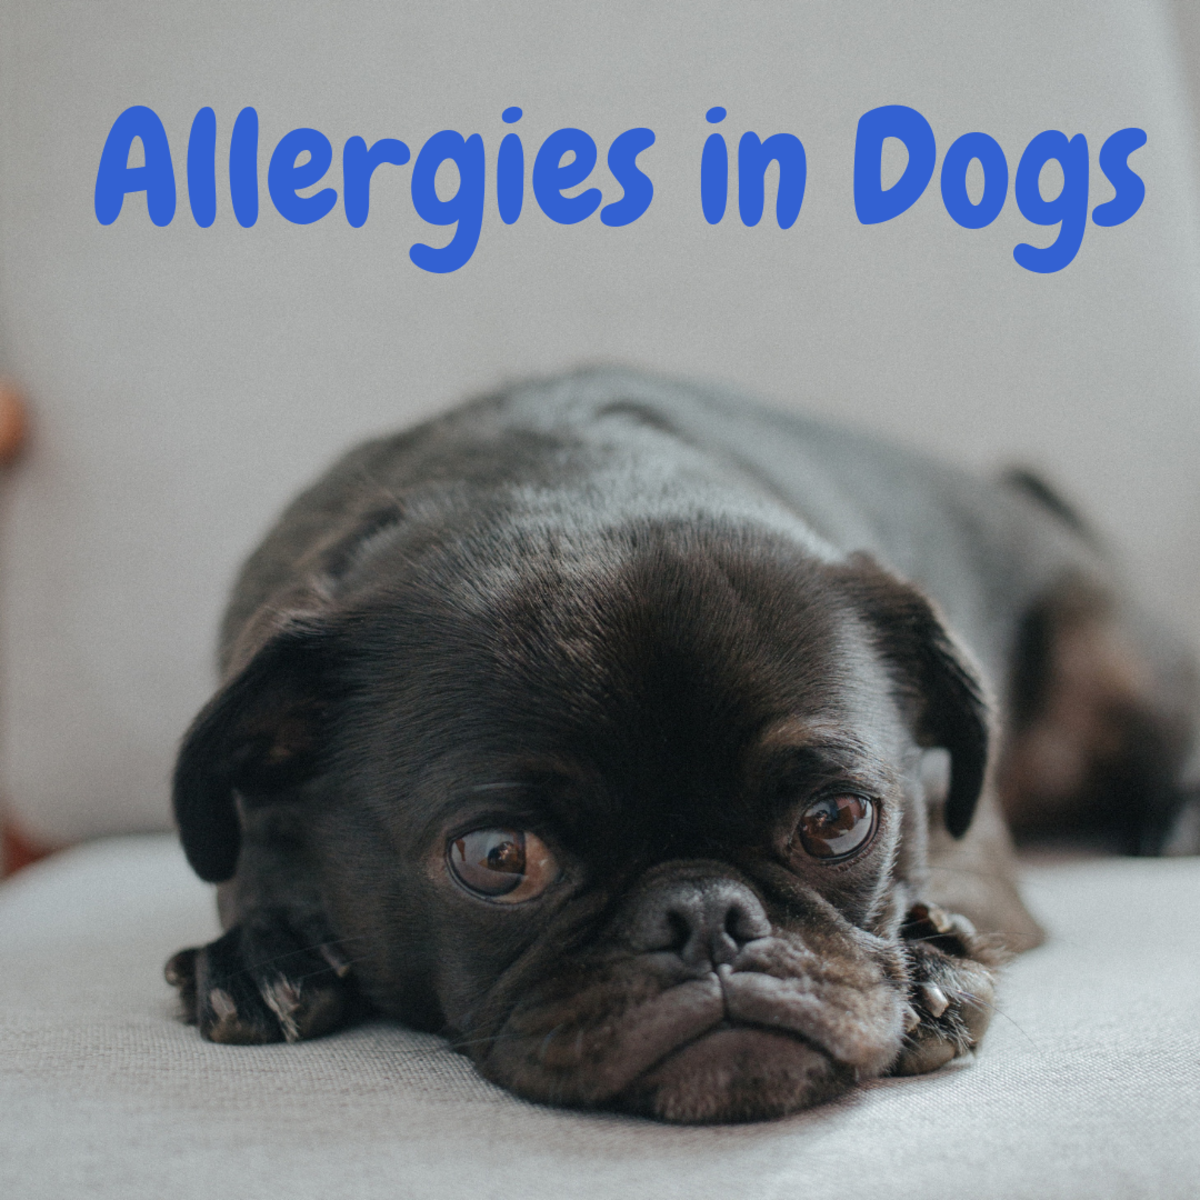 Skin Allergies in Dogs: Home Remedies to Try Before Seeing Your Vet